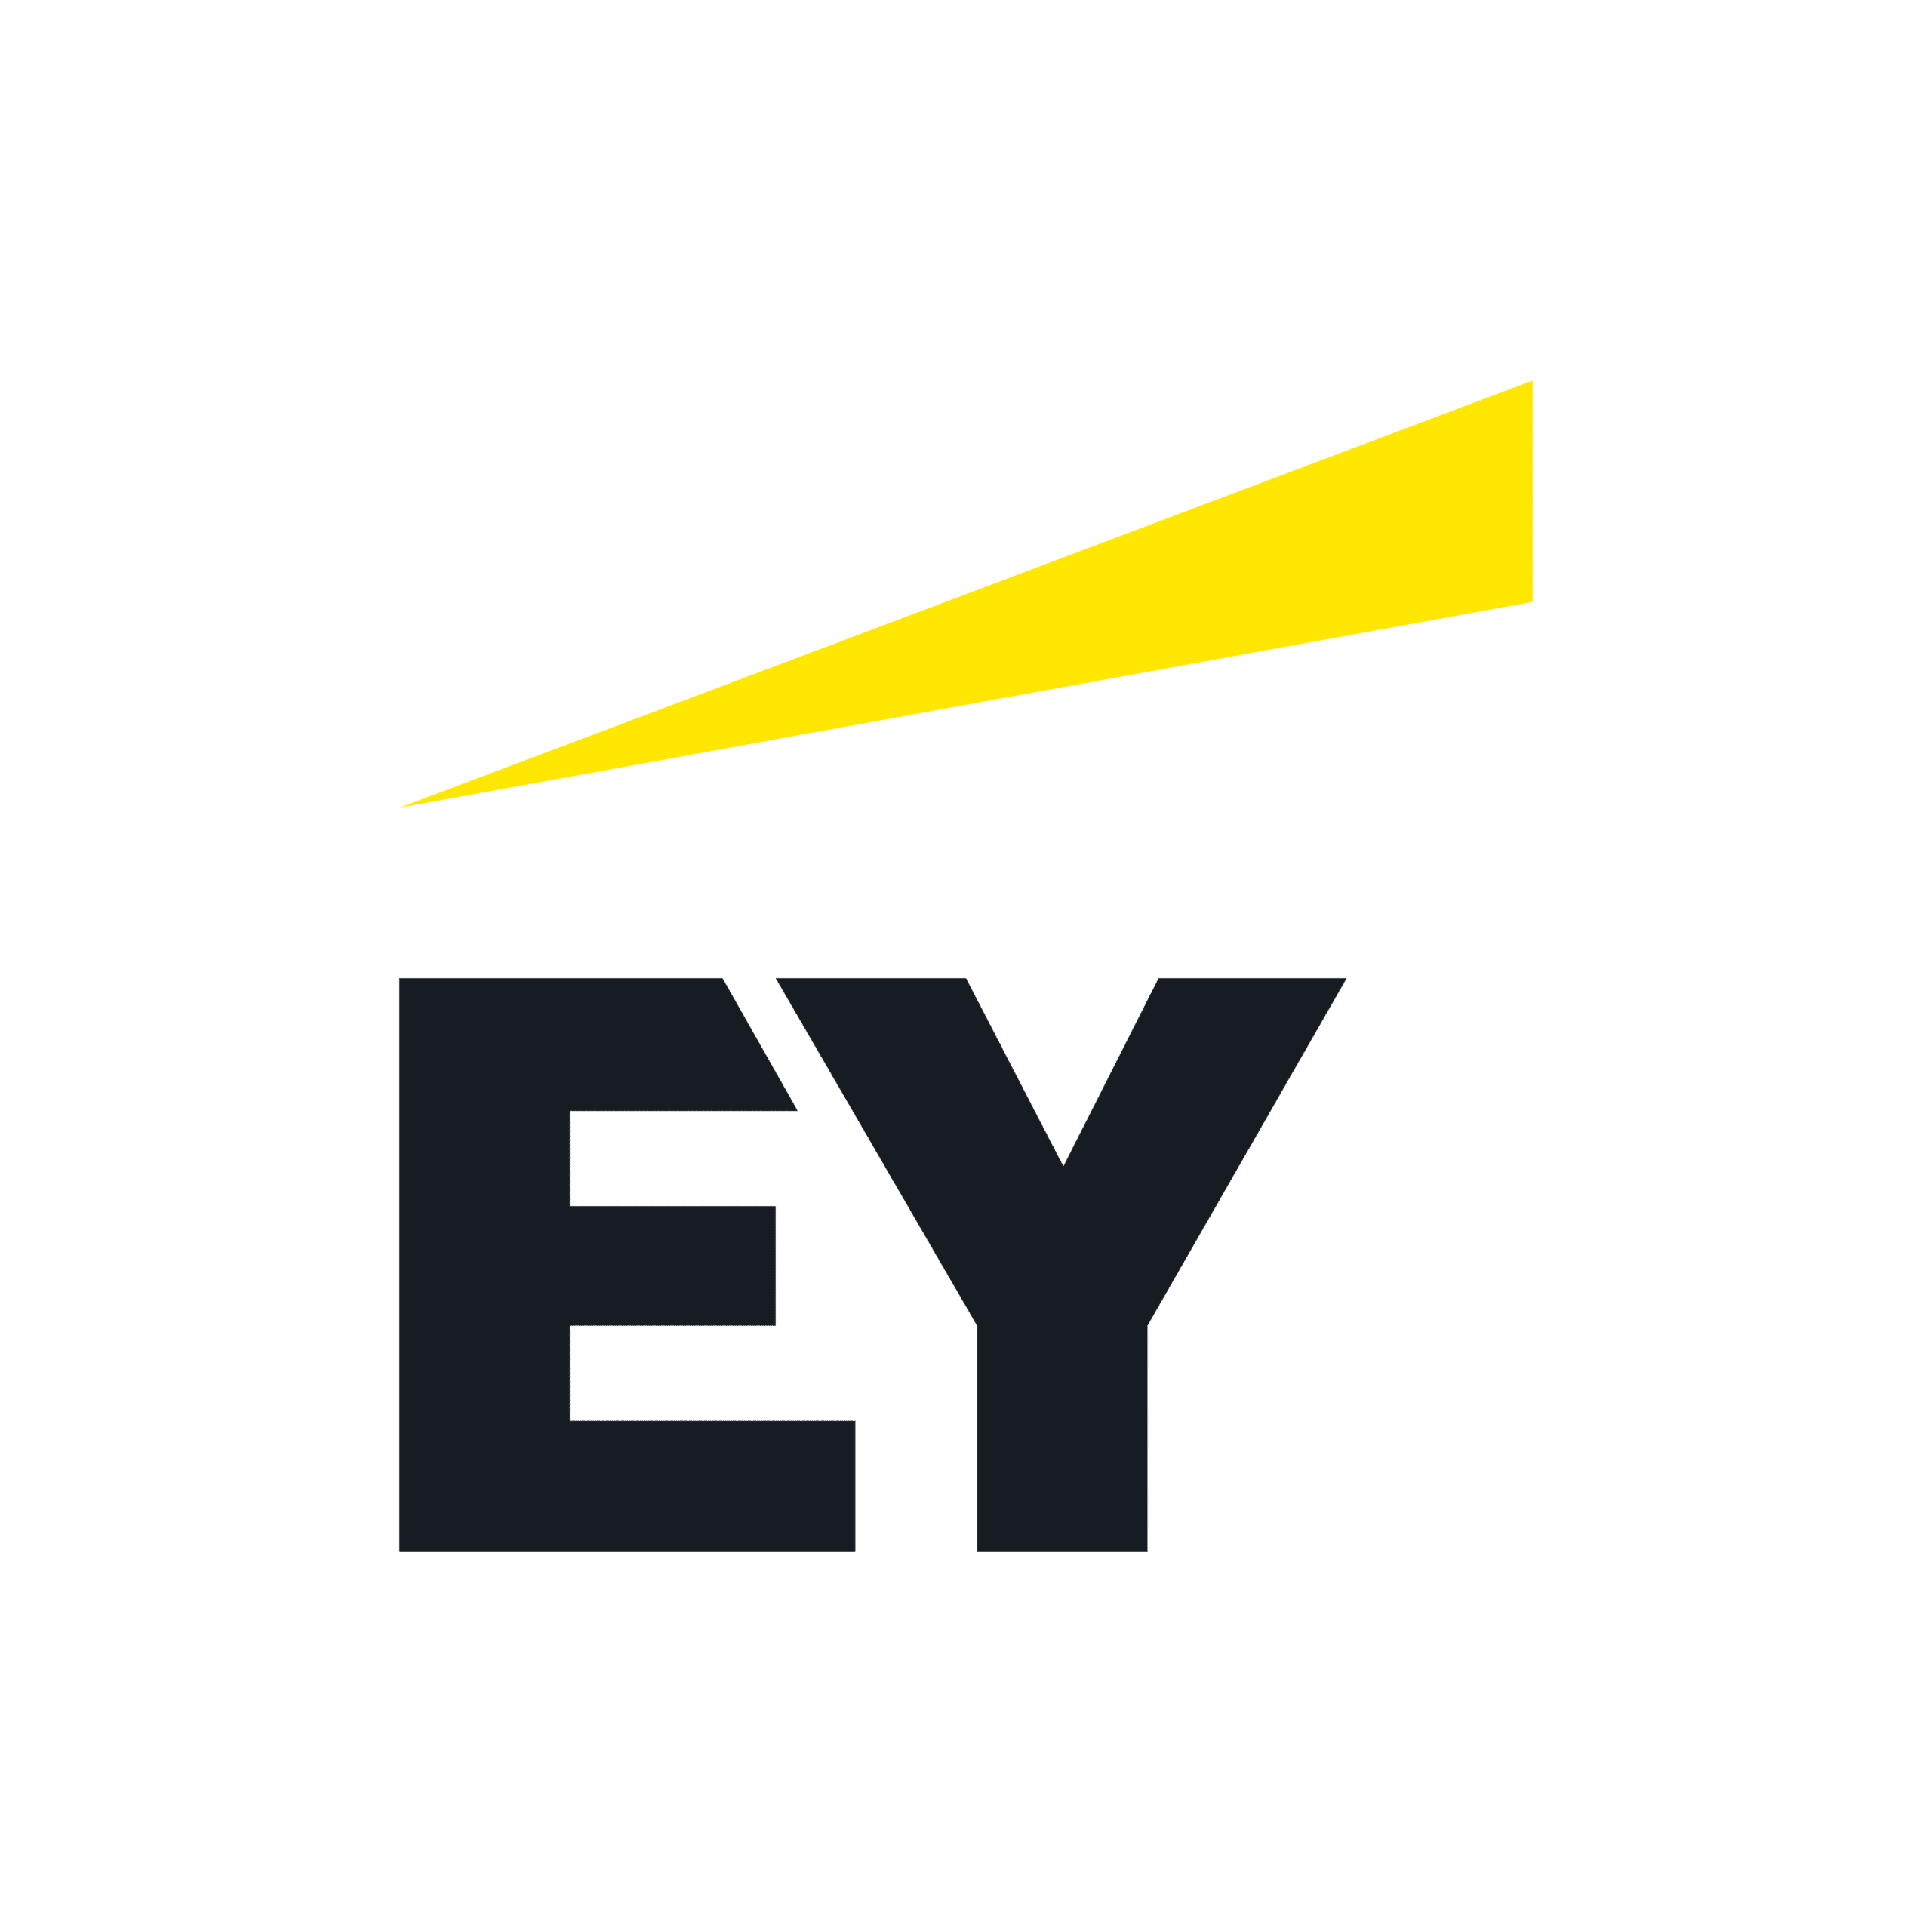 ernst-young-logo-0